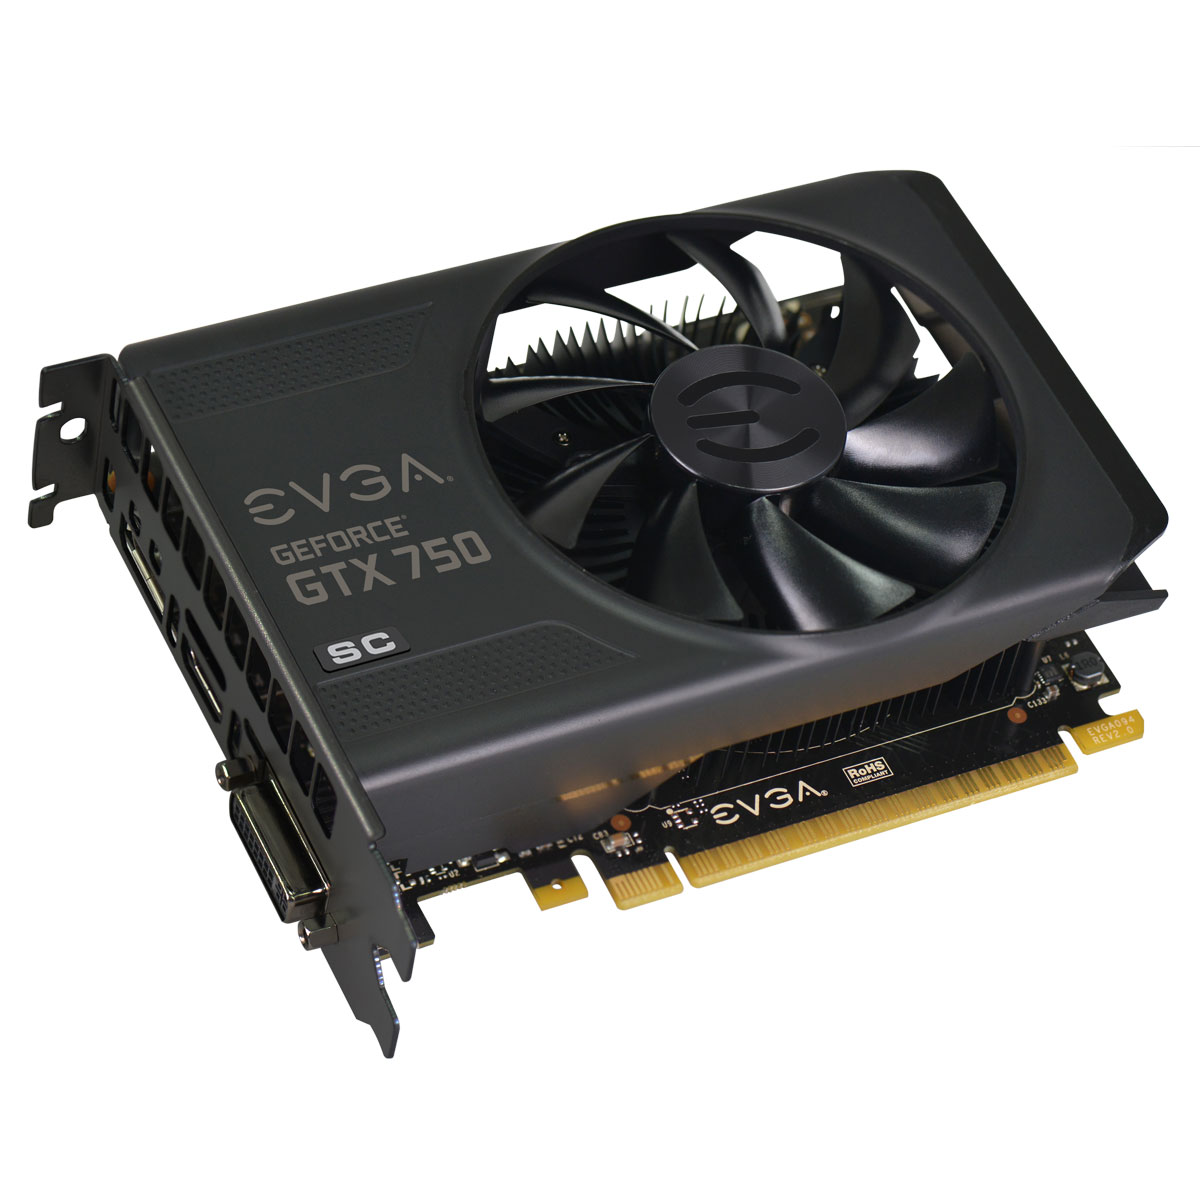 EVGA GTX 750 2GB Superclocked 01